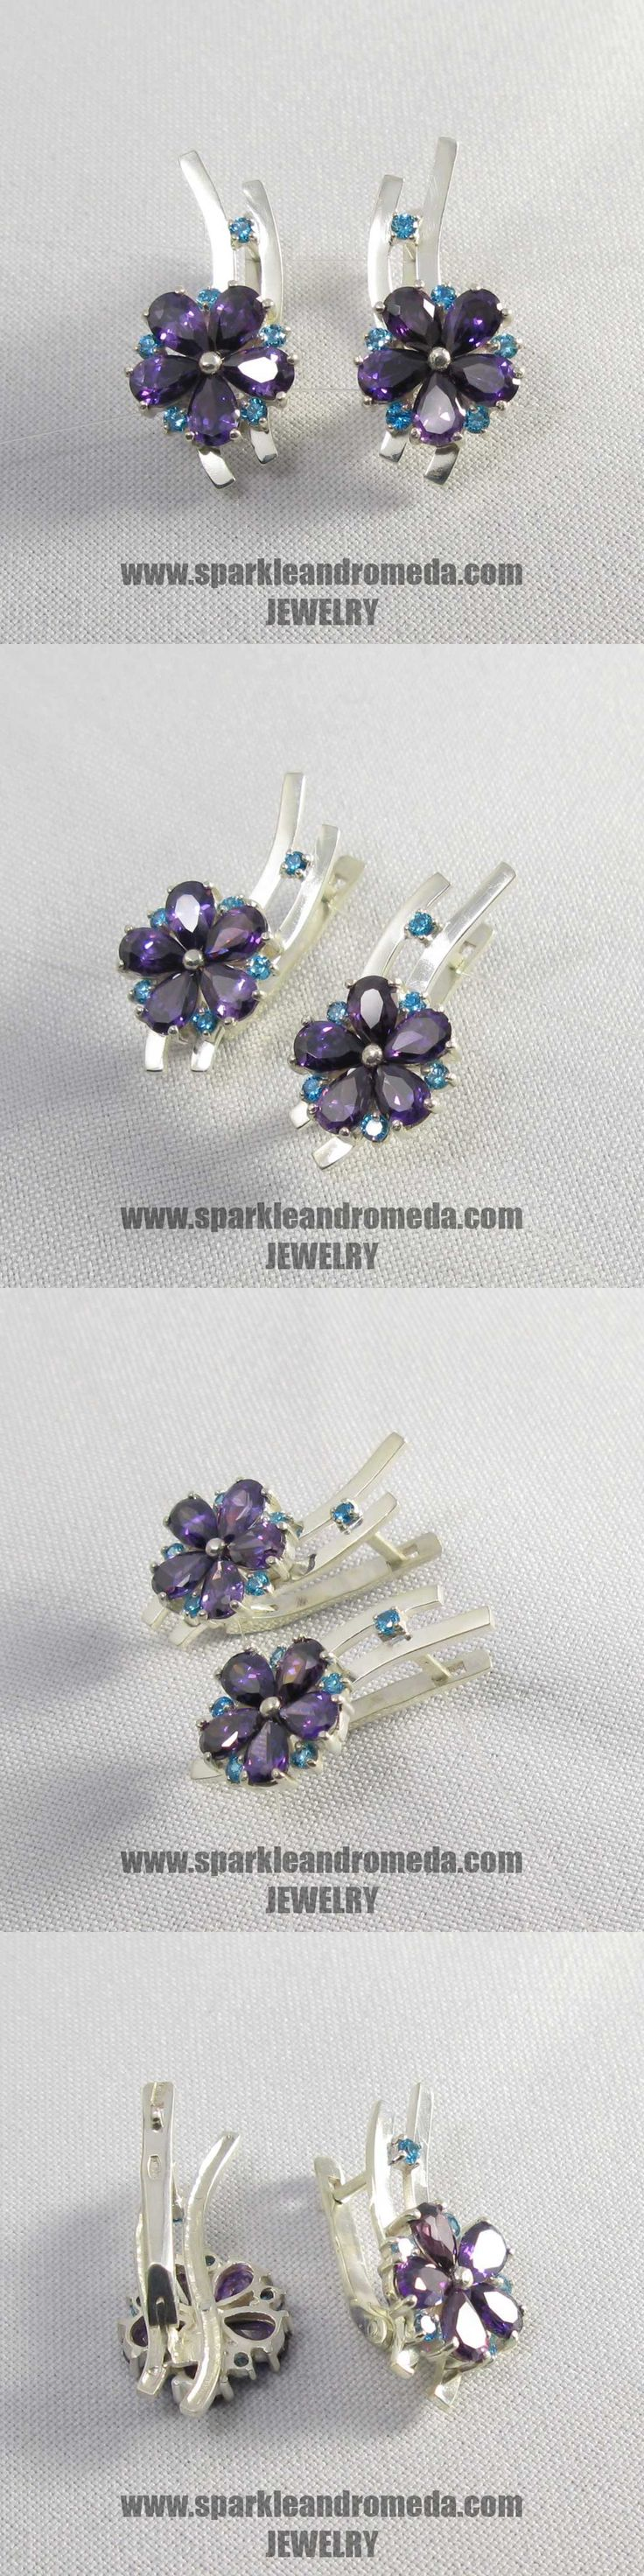 Sterling 925 silver earrings with 10 pear 6×4 mm violet amethyst color and 12 round 2 mm blue topaz color cubic zirconia gemstones.